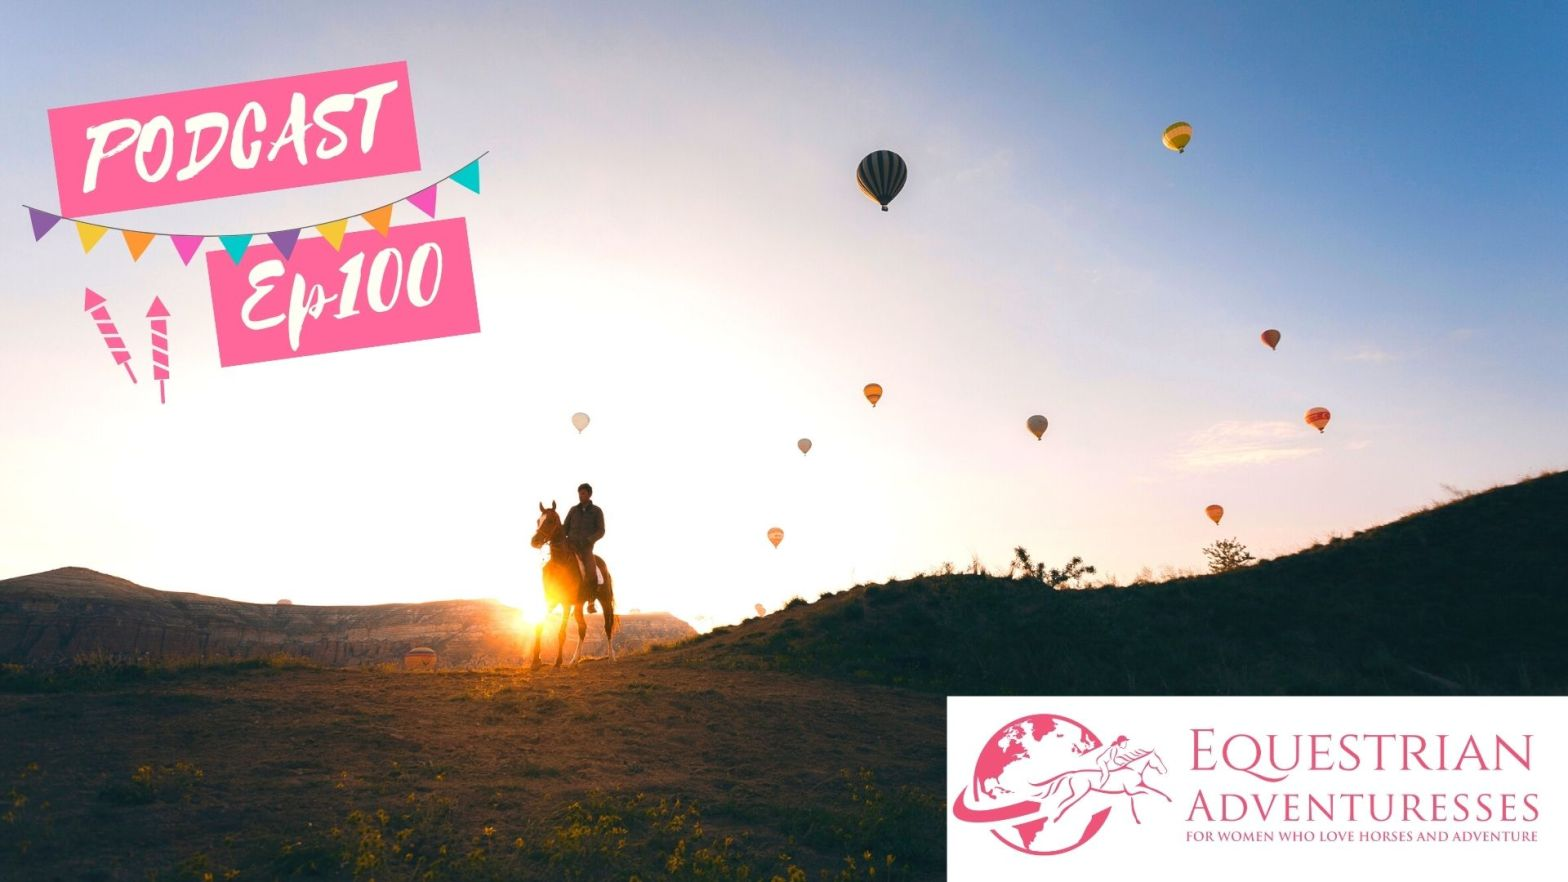 Equestrian Adventuresses Travel and Horse Podcast Ep 100 - We're Having a Party, let's celebrate 100 Episodes